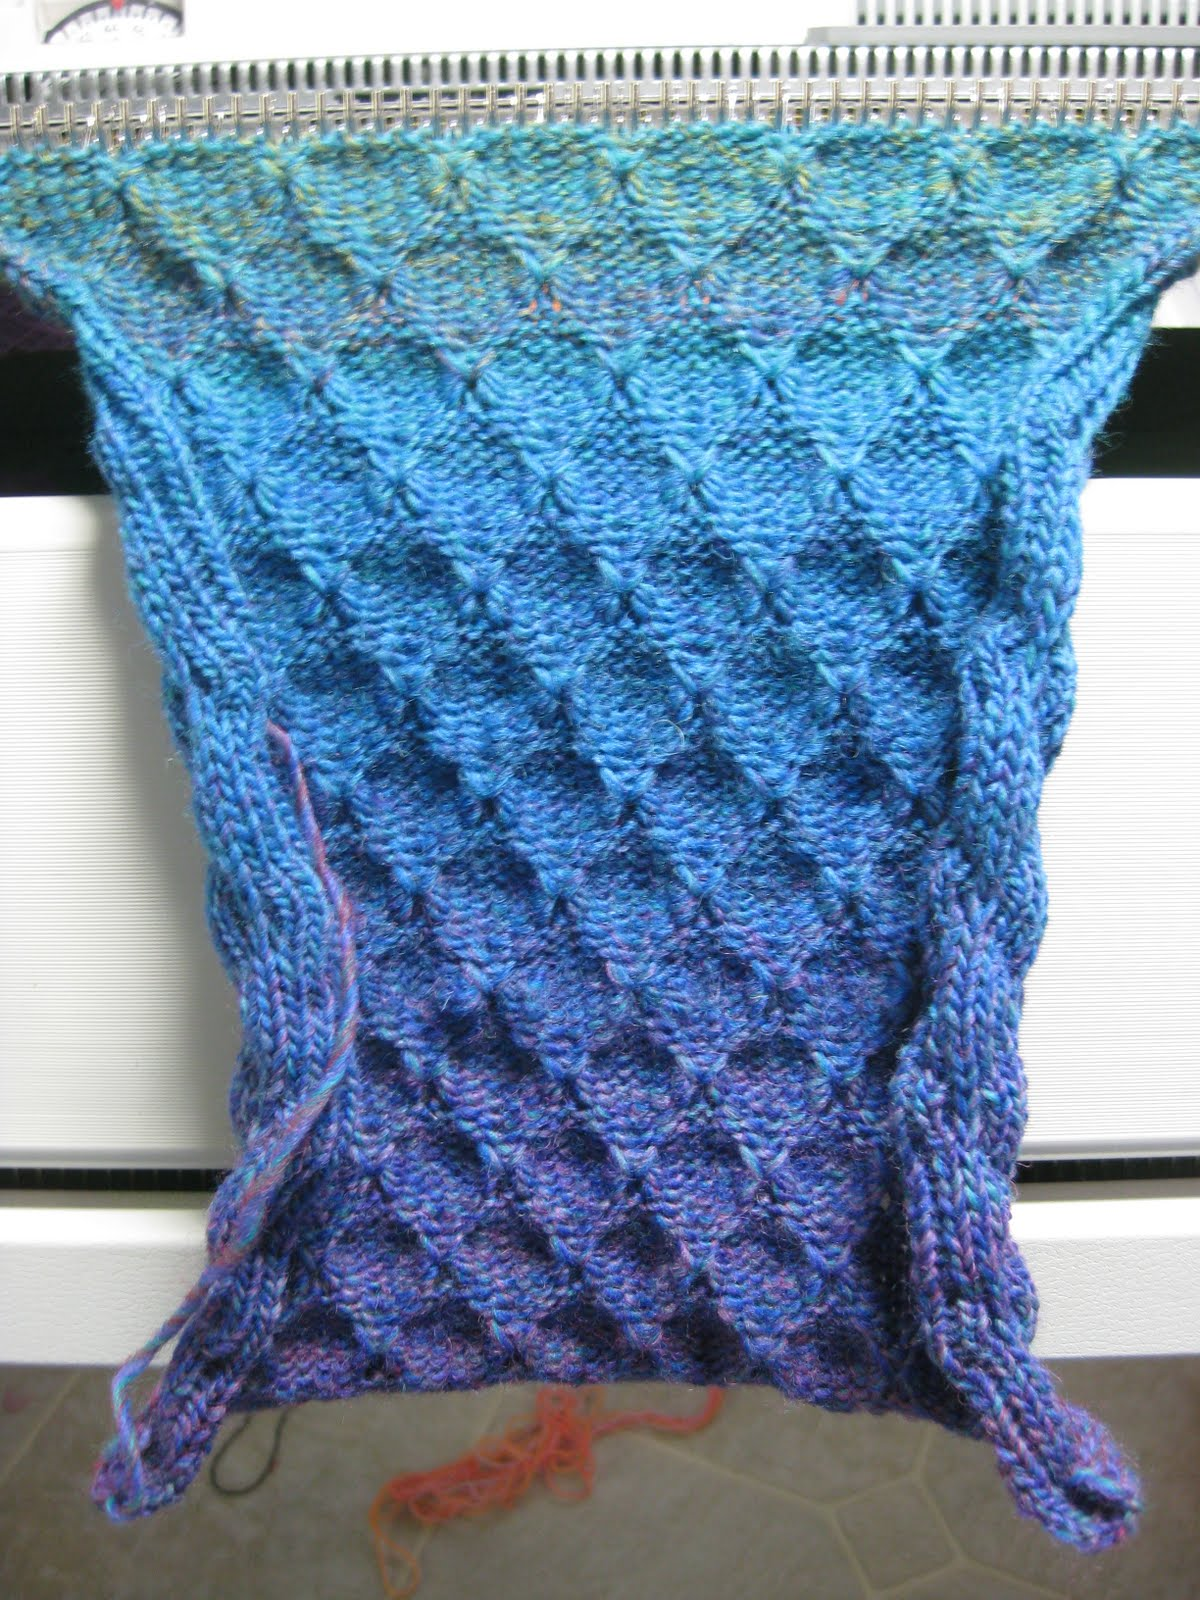 Machine Knitting Fun: Machine Knit Tuck Scarf